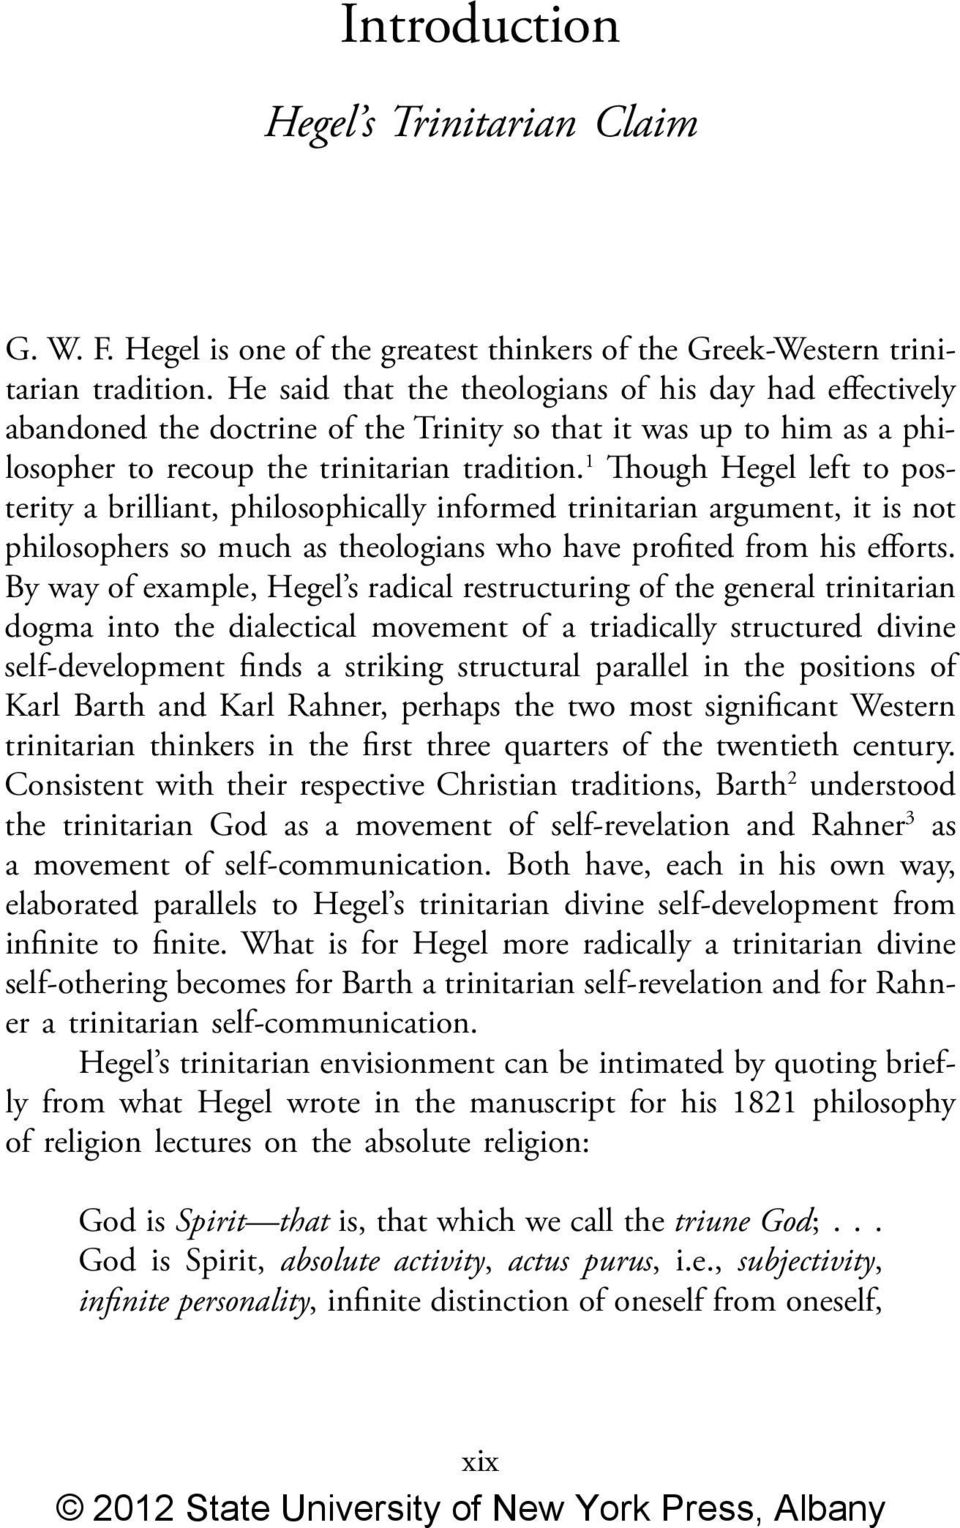 1 Though Hegel left to posterity a brilliant, philosophically informed trinitarian argument, it is not philosophers so much as theologians who have profited from his efforts.